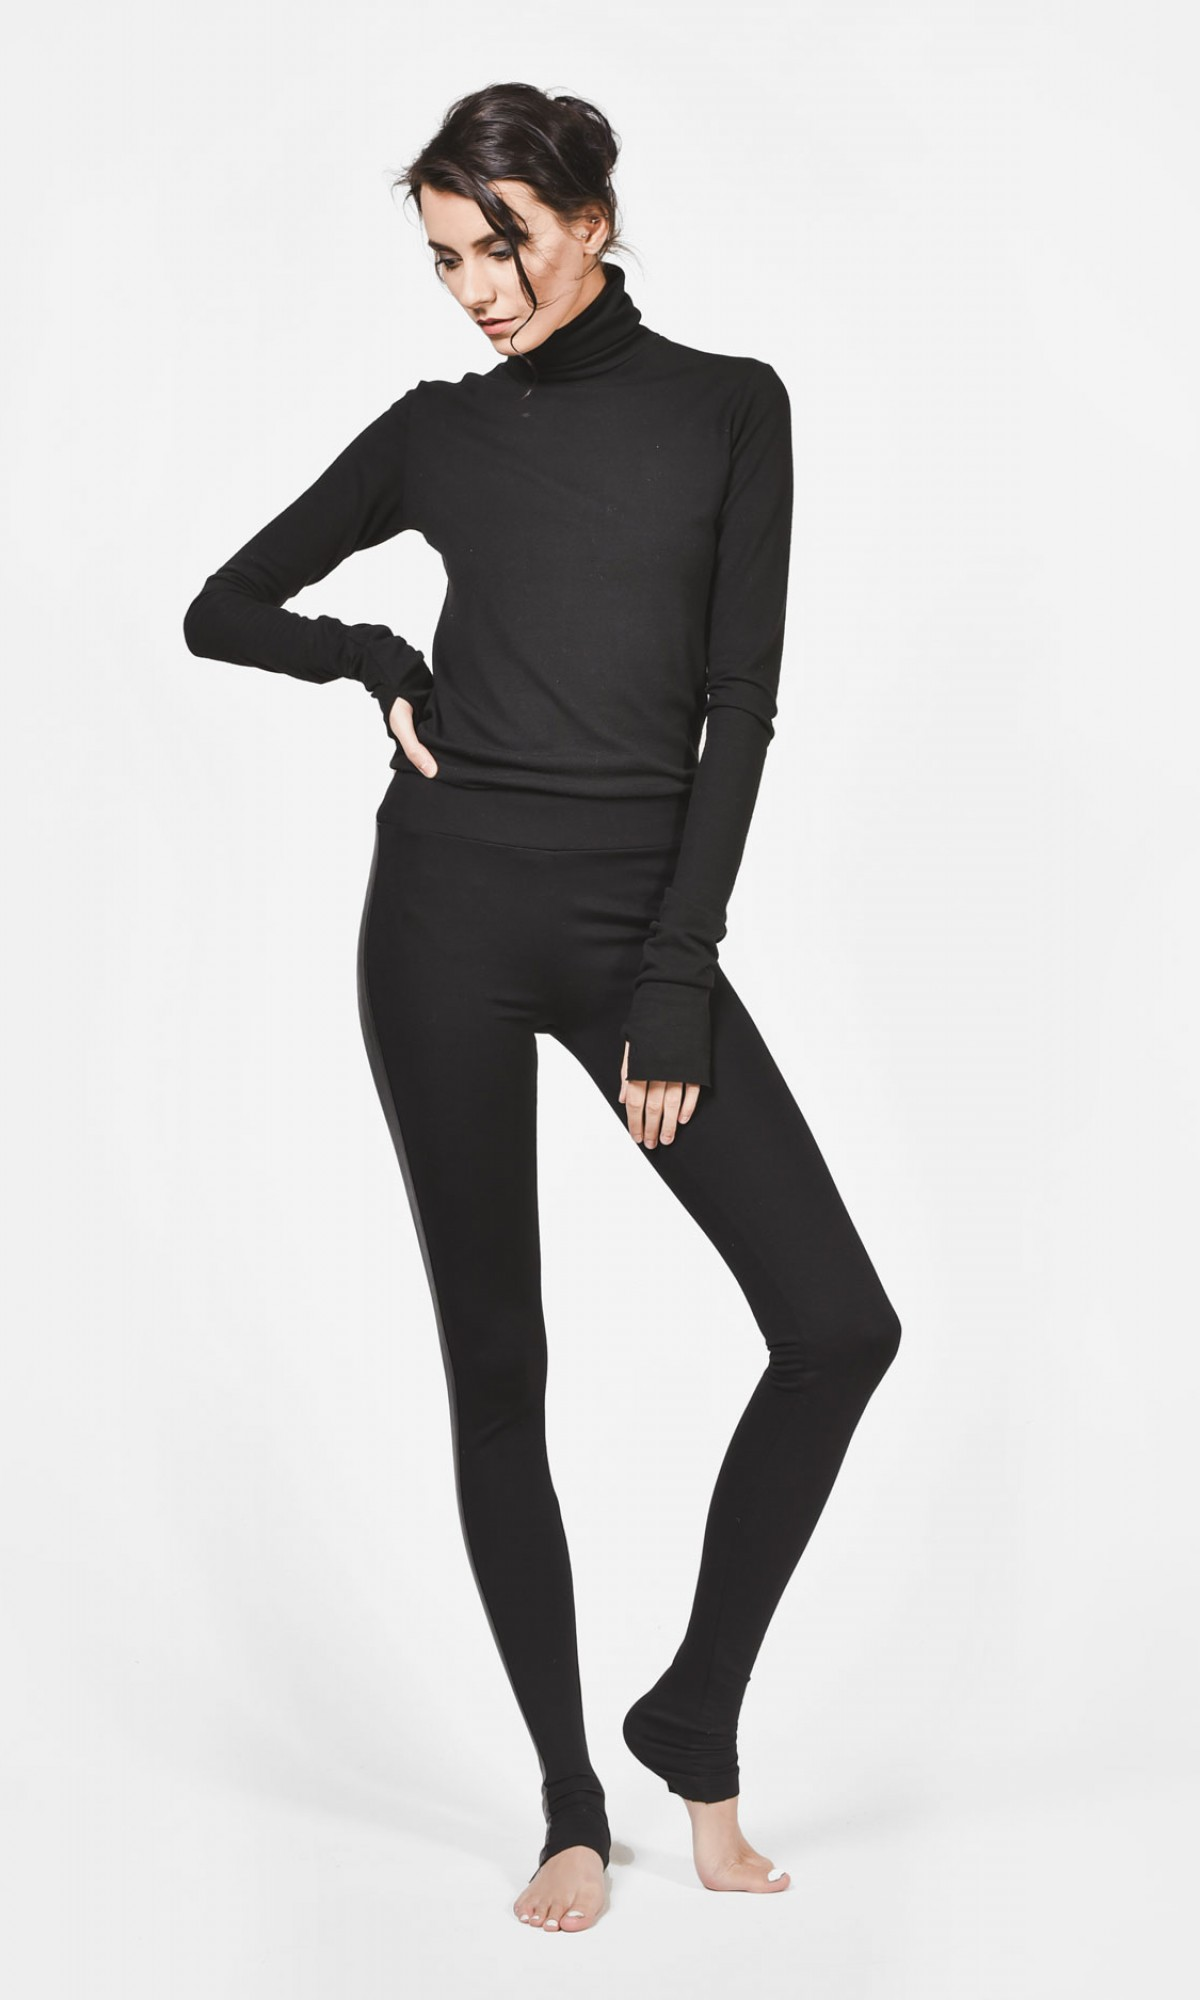 Black Extra Long Leggings with Faux Leather Sides A05510